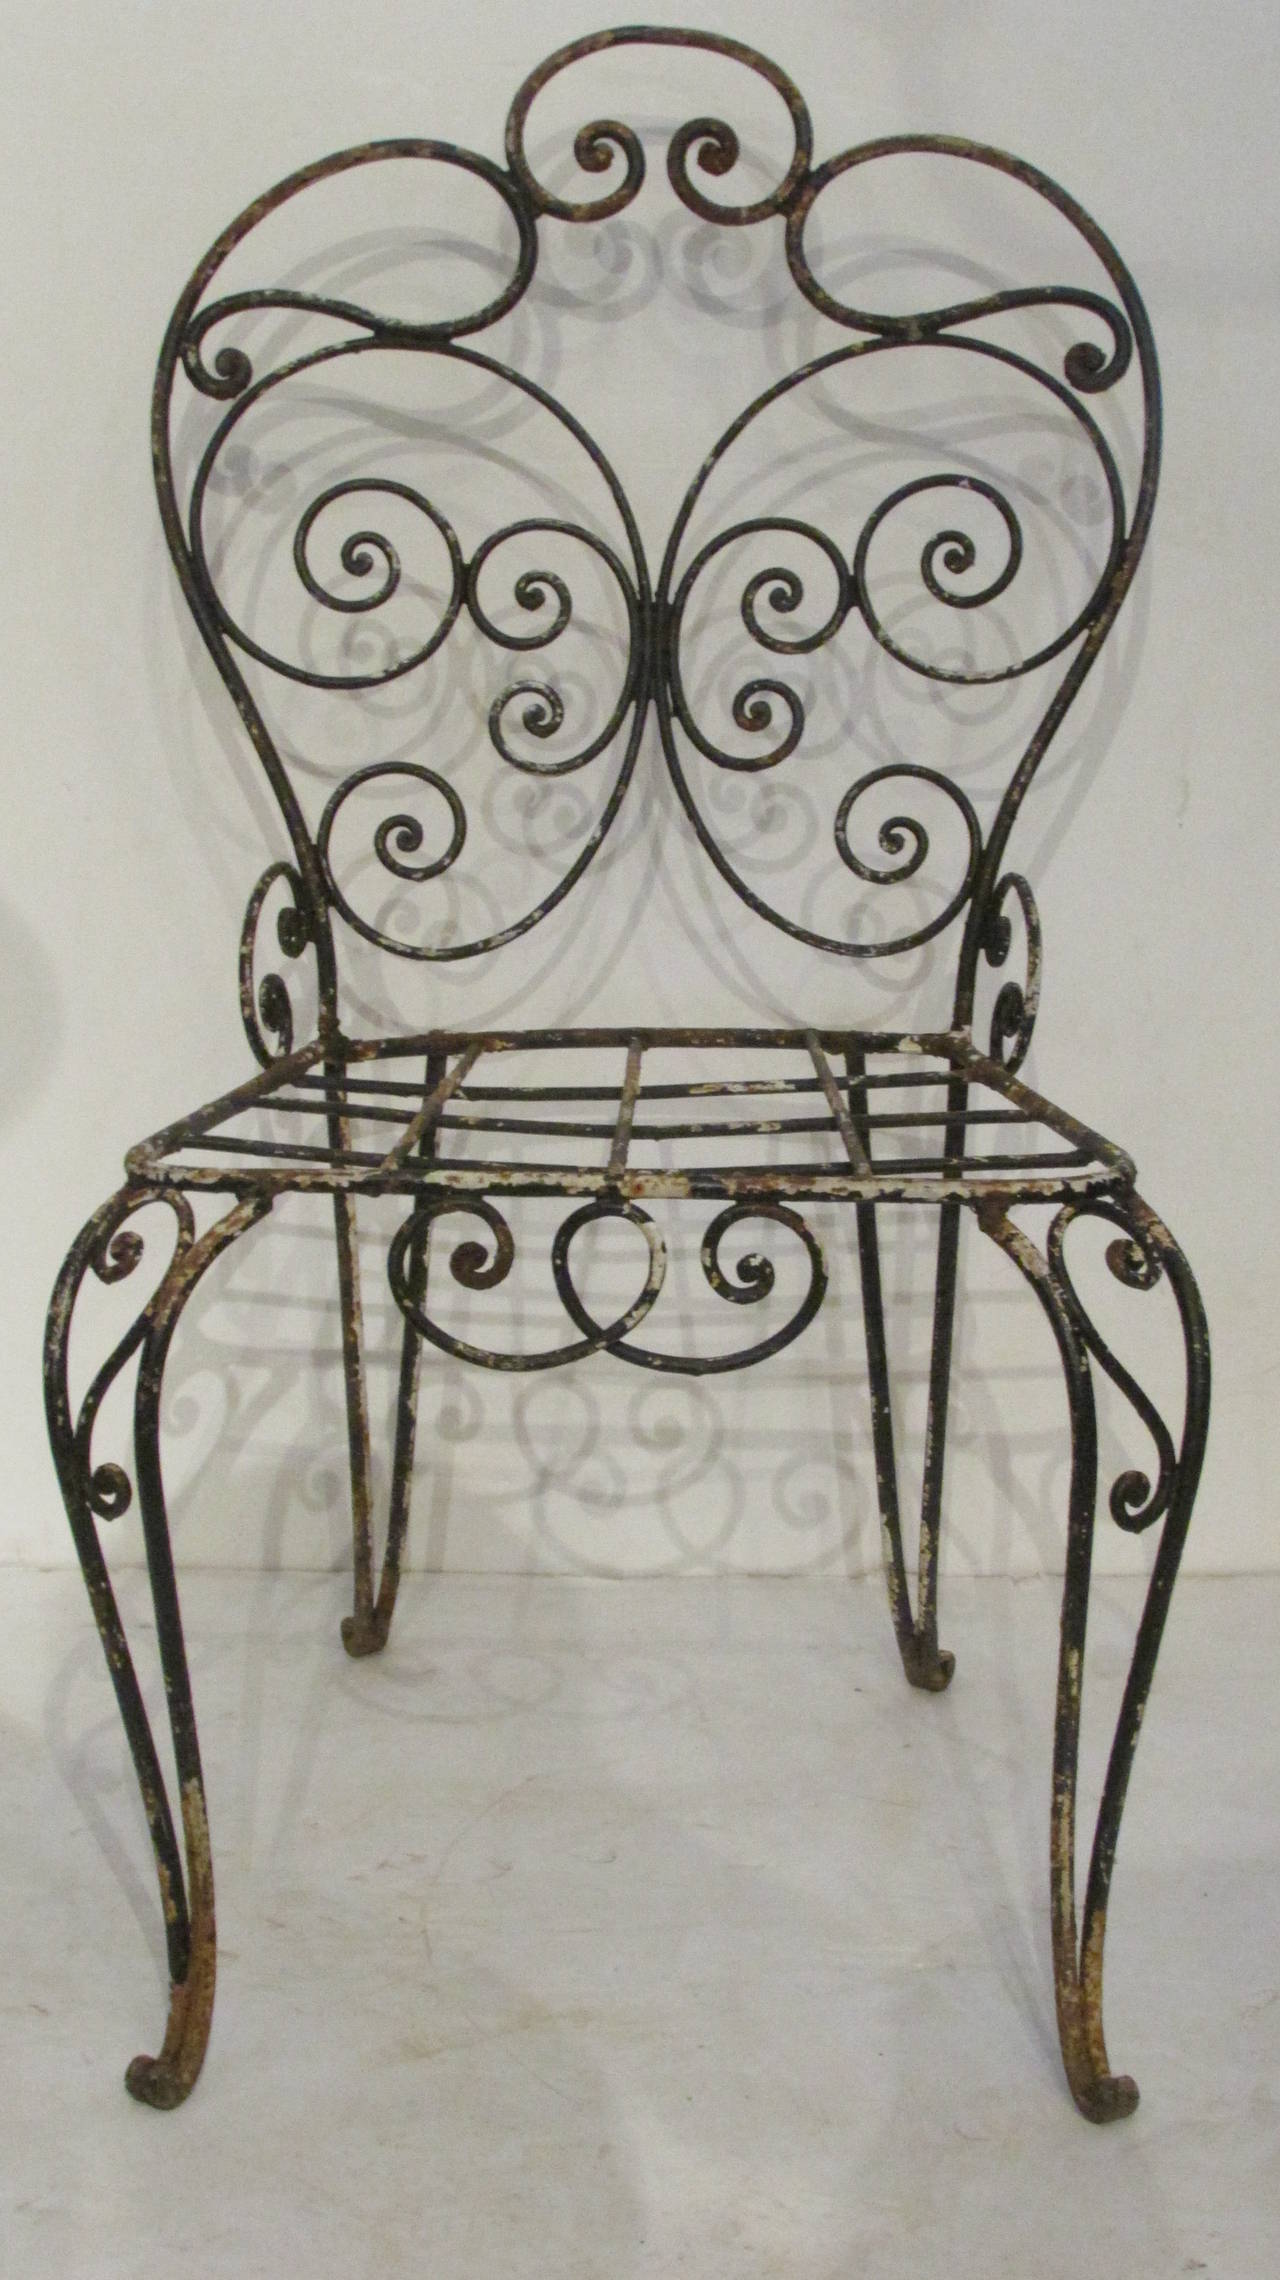 1940s French Iron Garden Chair For Sale 6